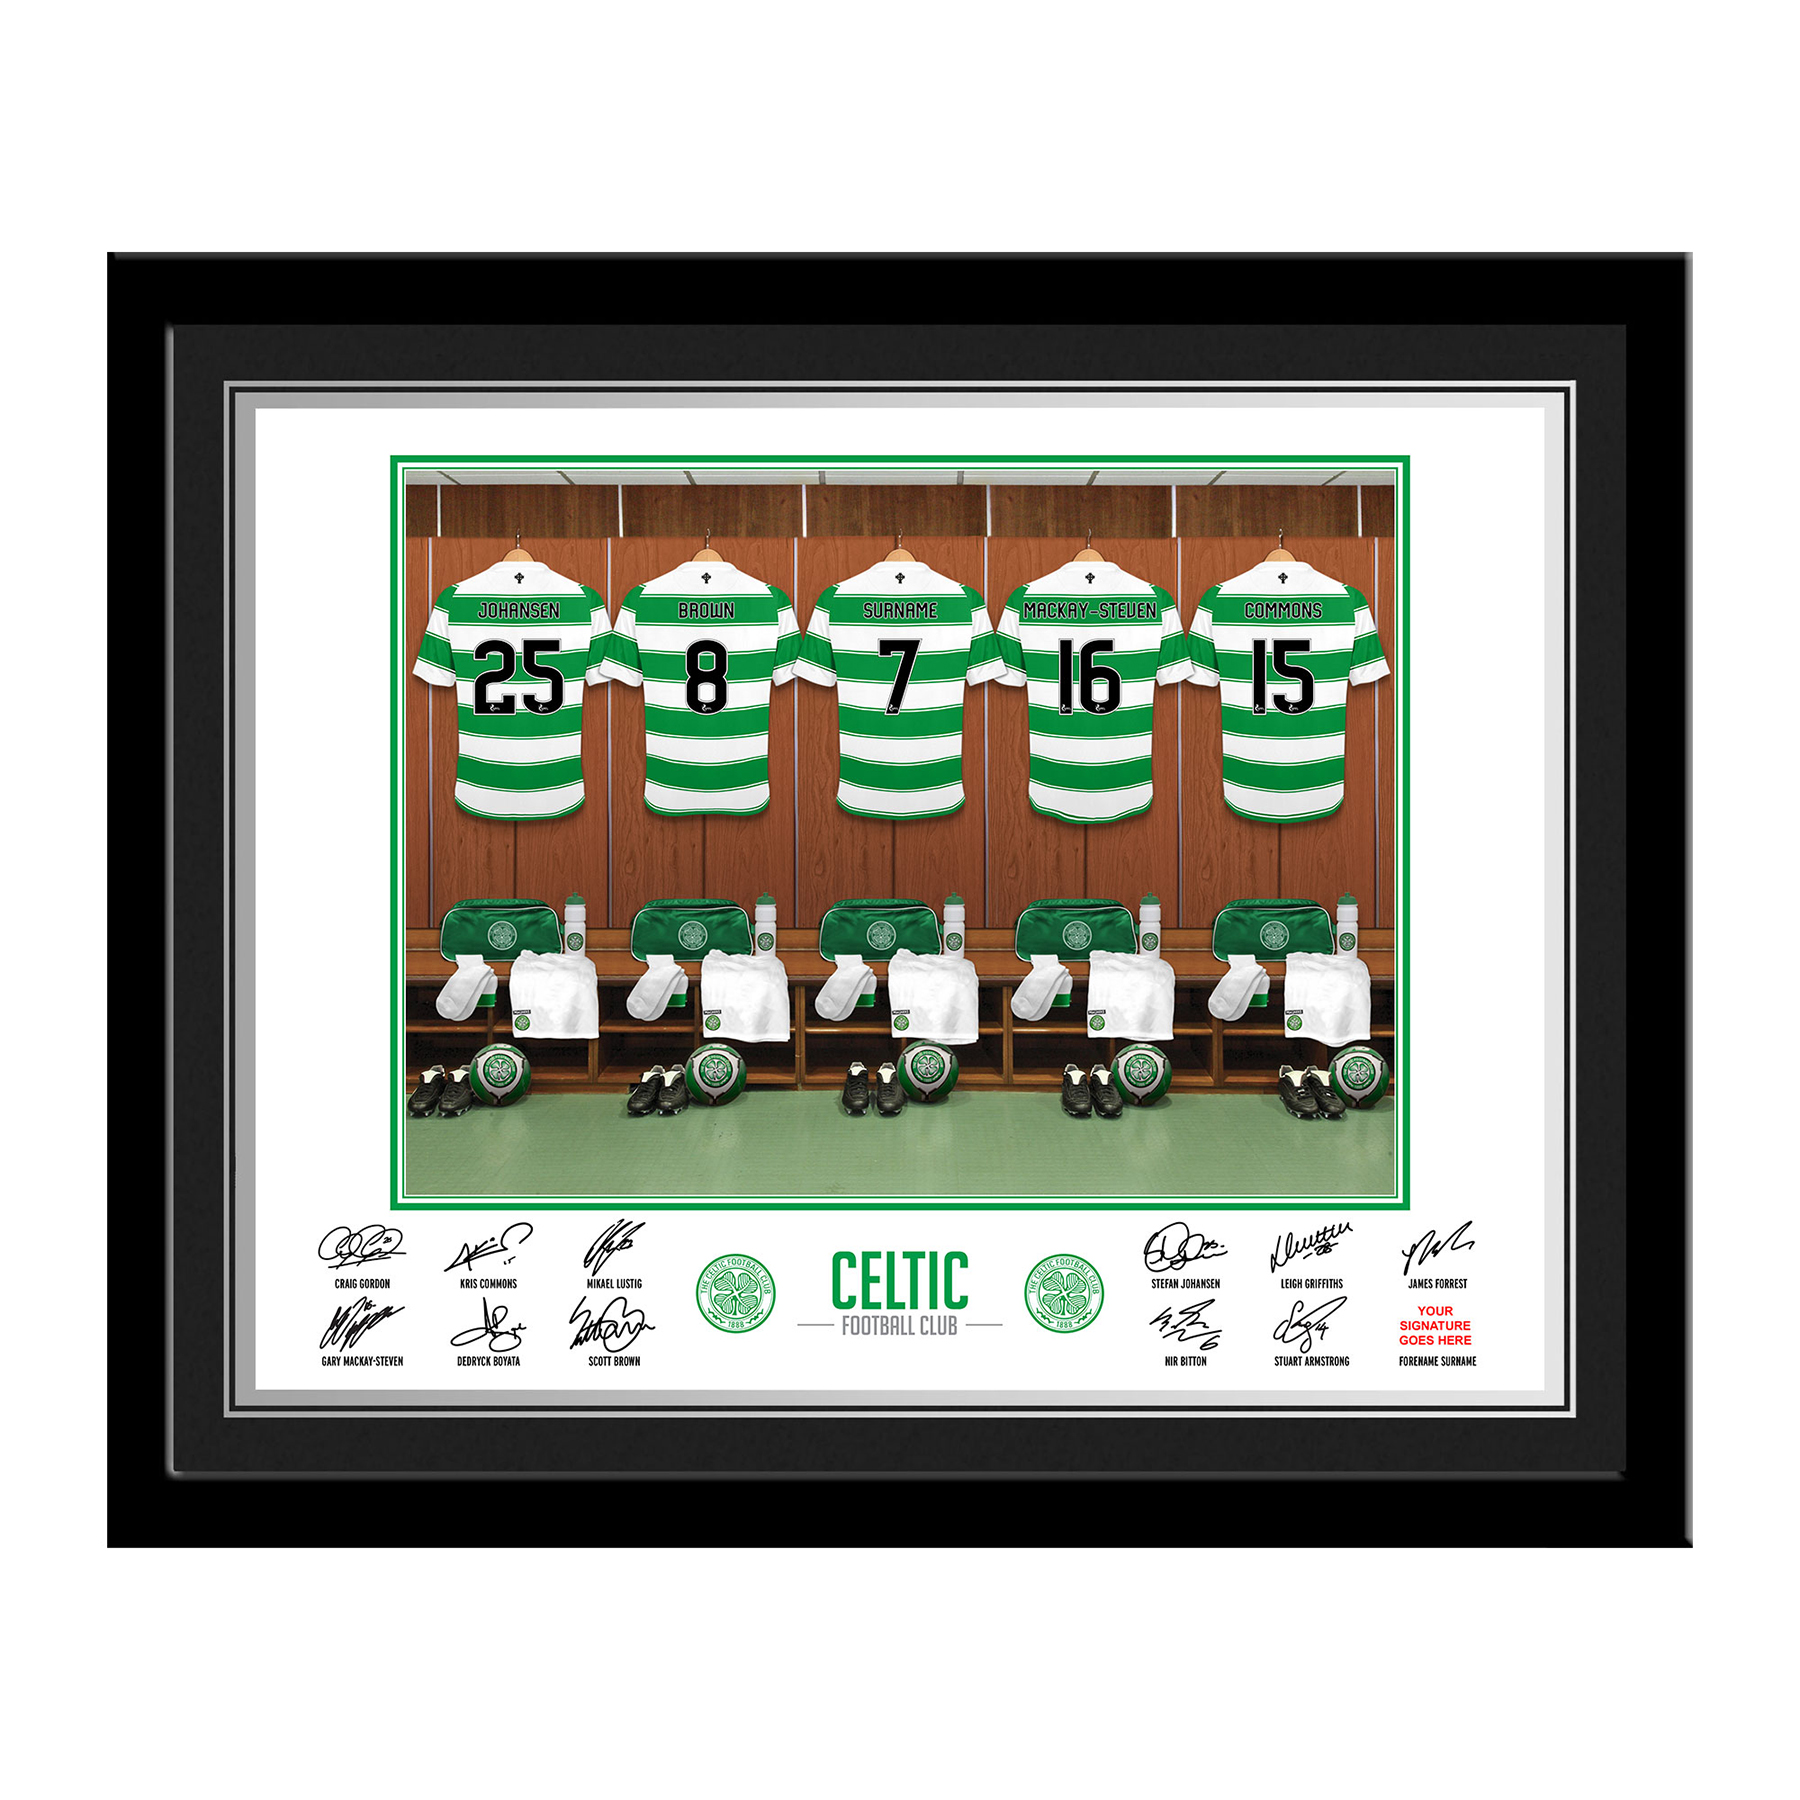 Celtic Personalised Dressing Room Photo Framed